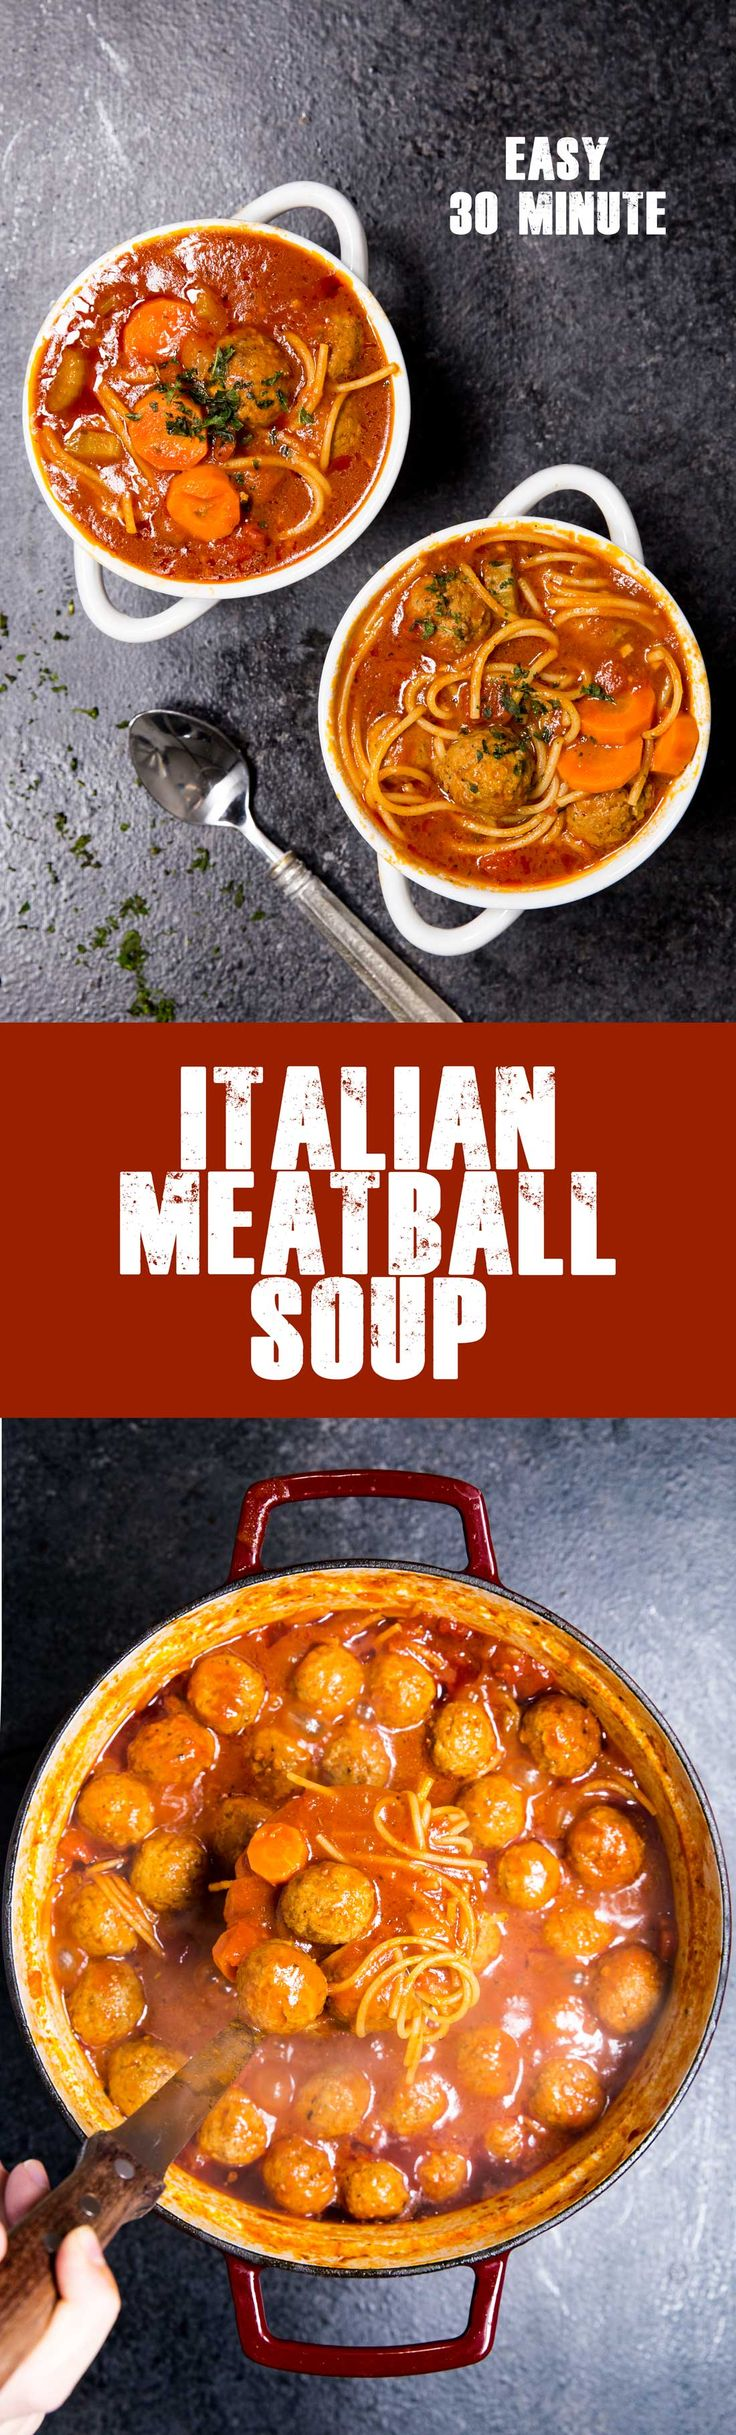 Easy Italian Meatball Soup is a classic soup full of delicious flavors. Cozy, comforting and a family favorite. #ad #FreezerFreshIdeas @MySmithsGrocery